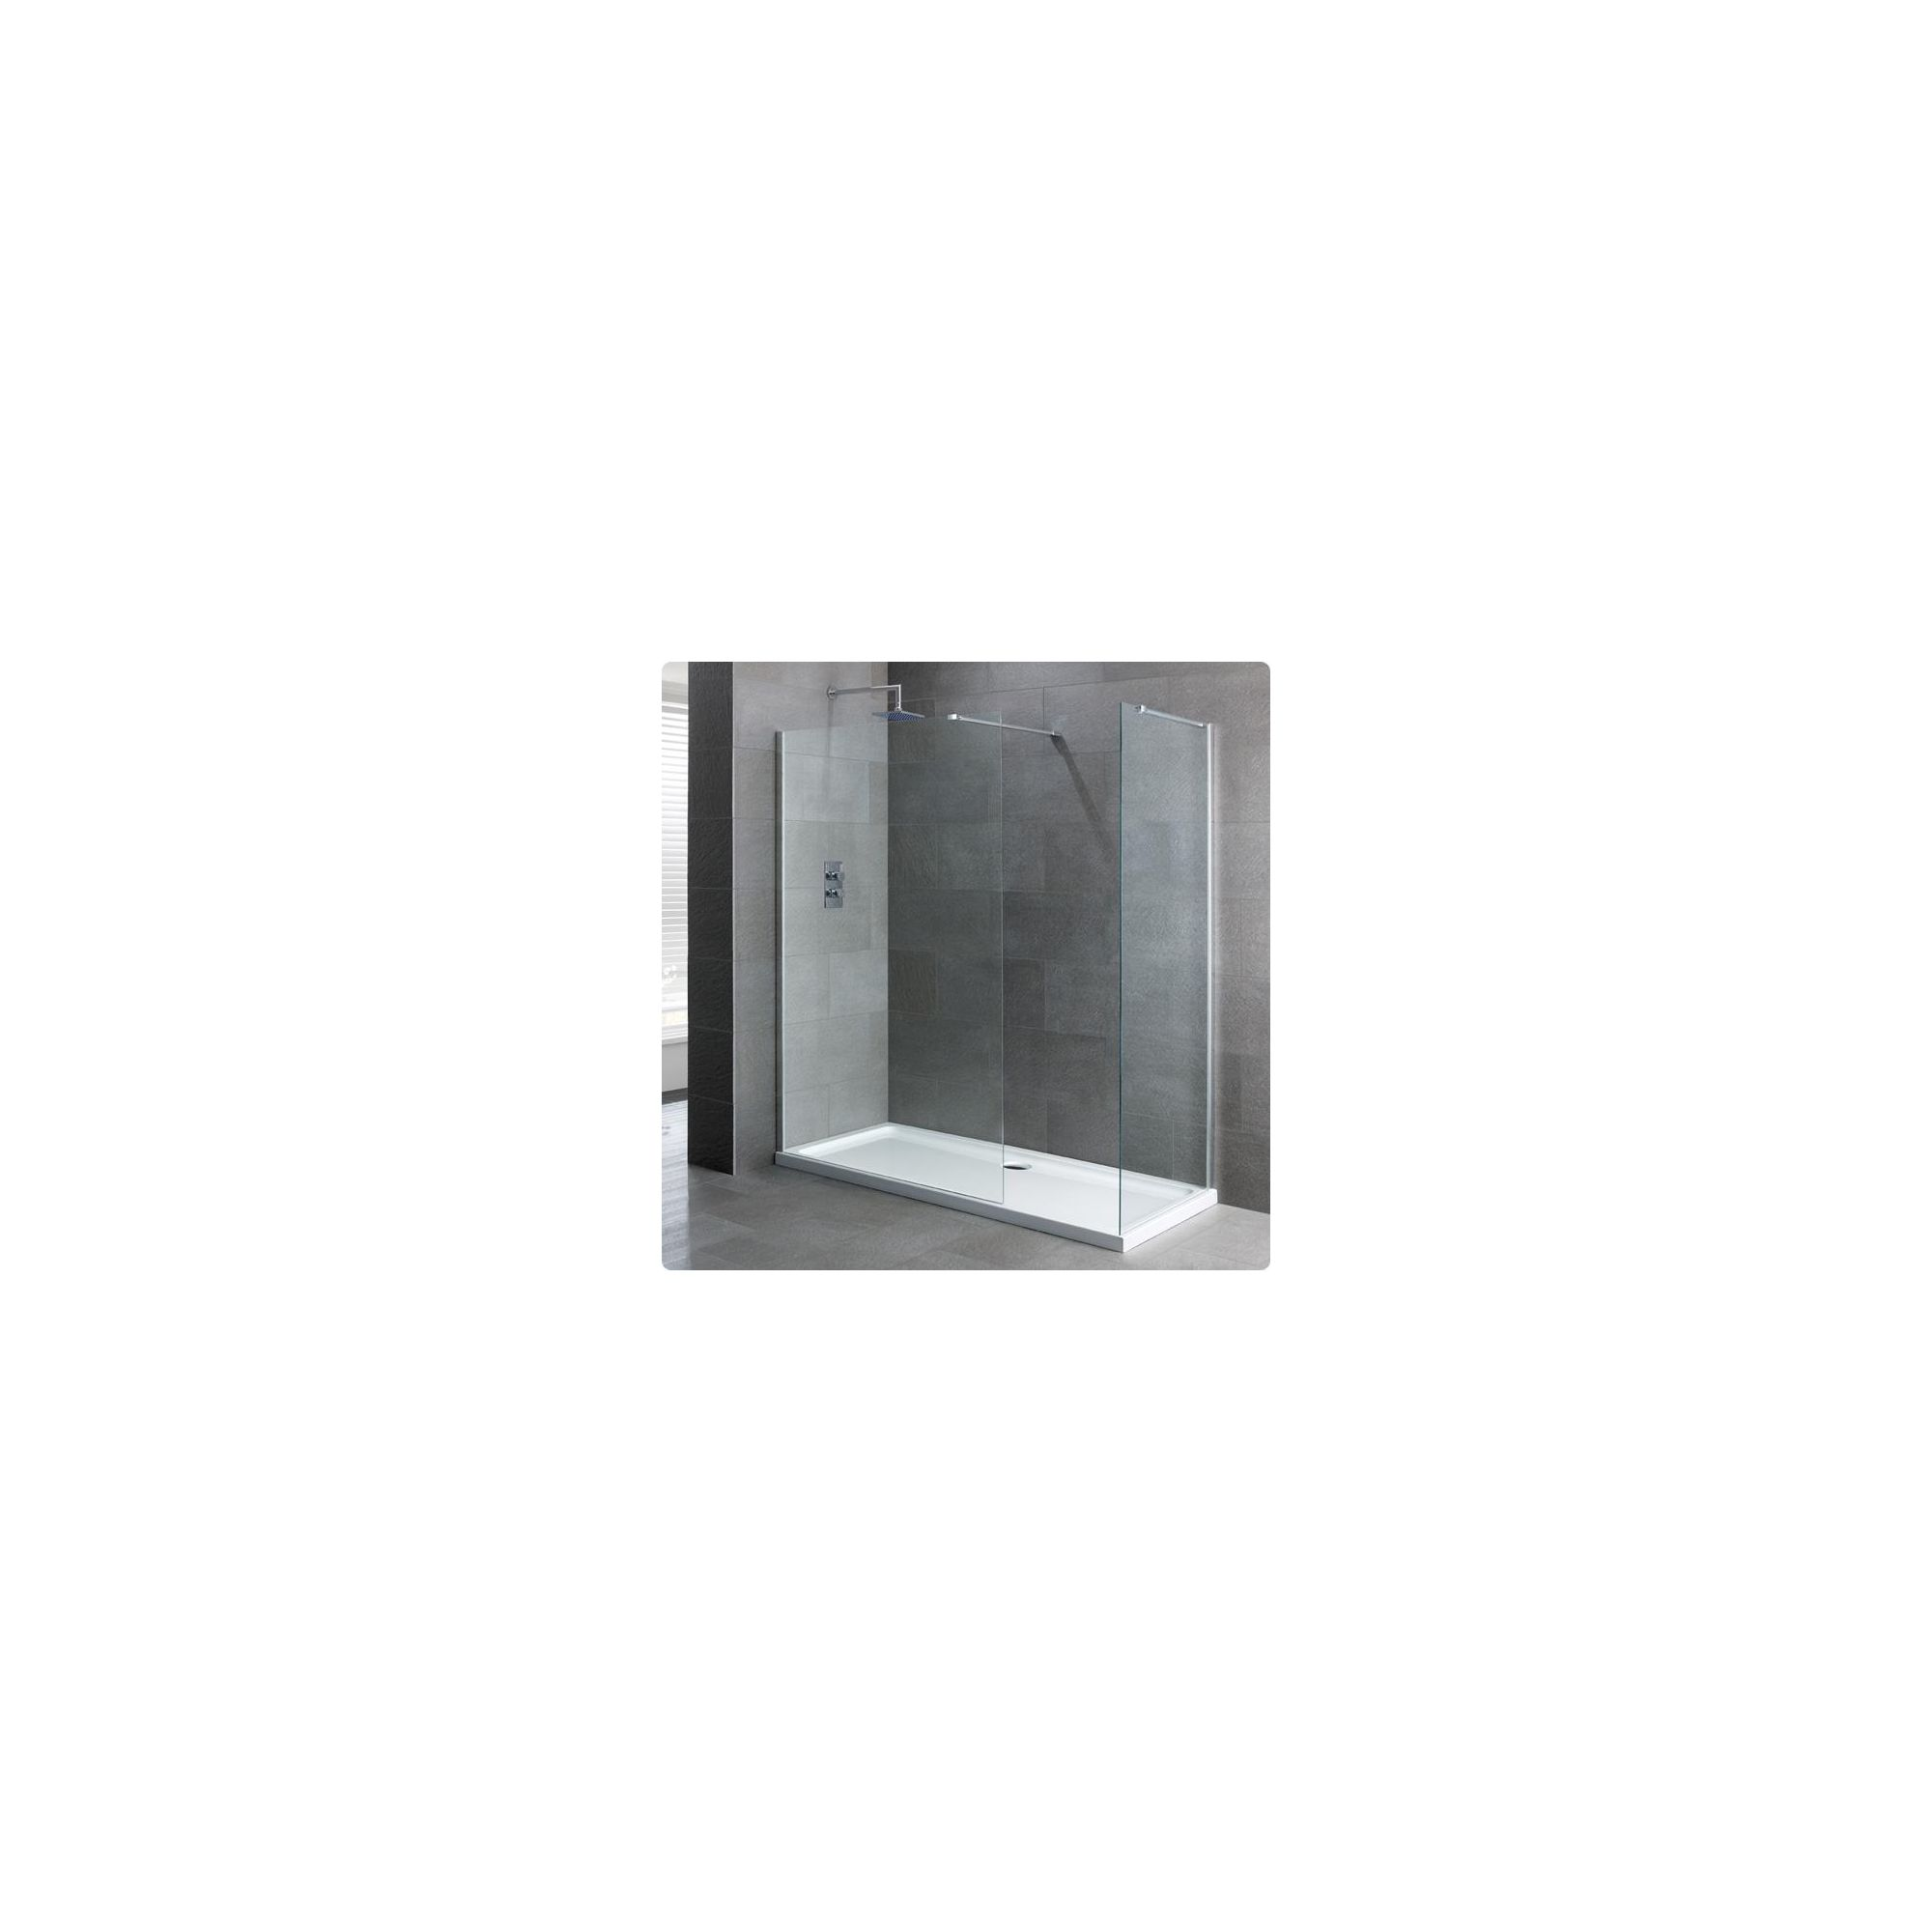 Duchy Select Silver Walk-In Shower Enclosure 1200mm x 700mm, Standard Tray, 6mm Glass at Tesco Direct